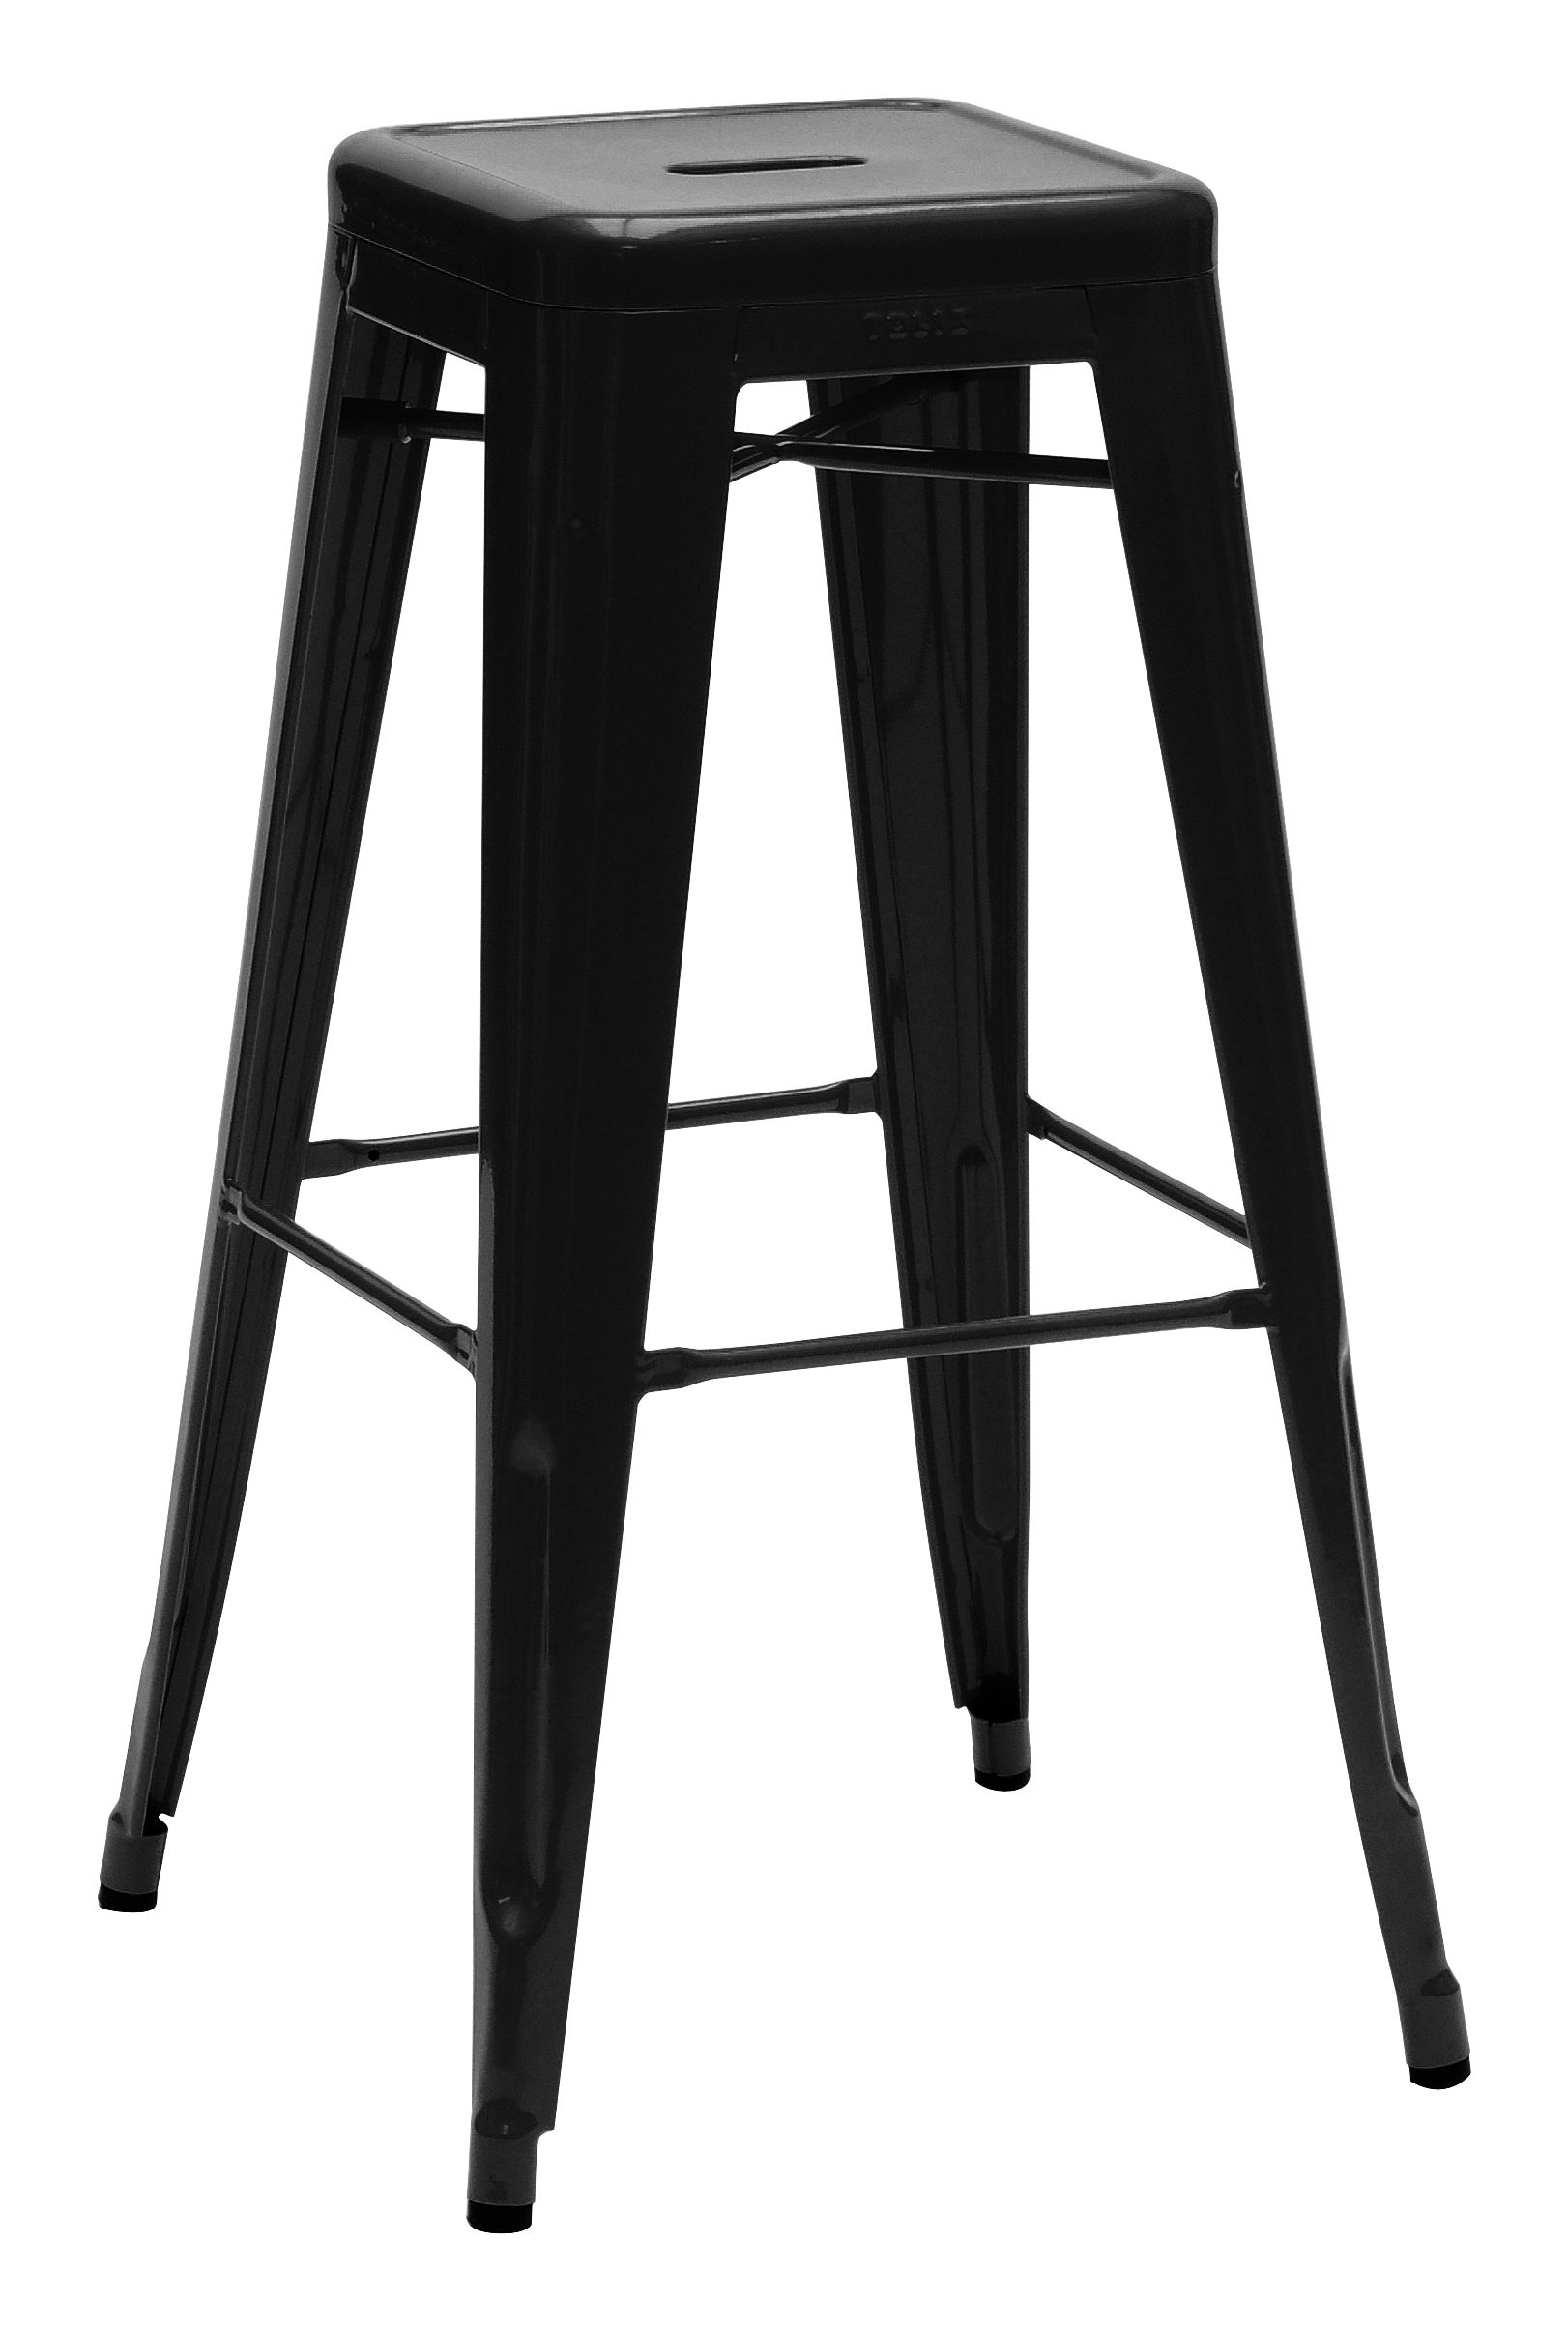 Furniture - Bar Stools - H Bar stool - H 75 cm - Glossy color by Tolix - Black - Lacquered steel